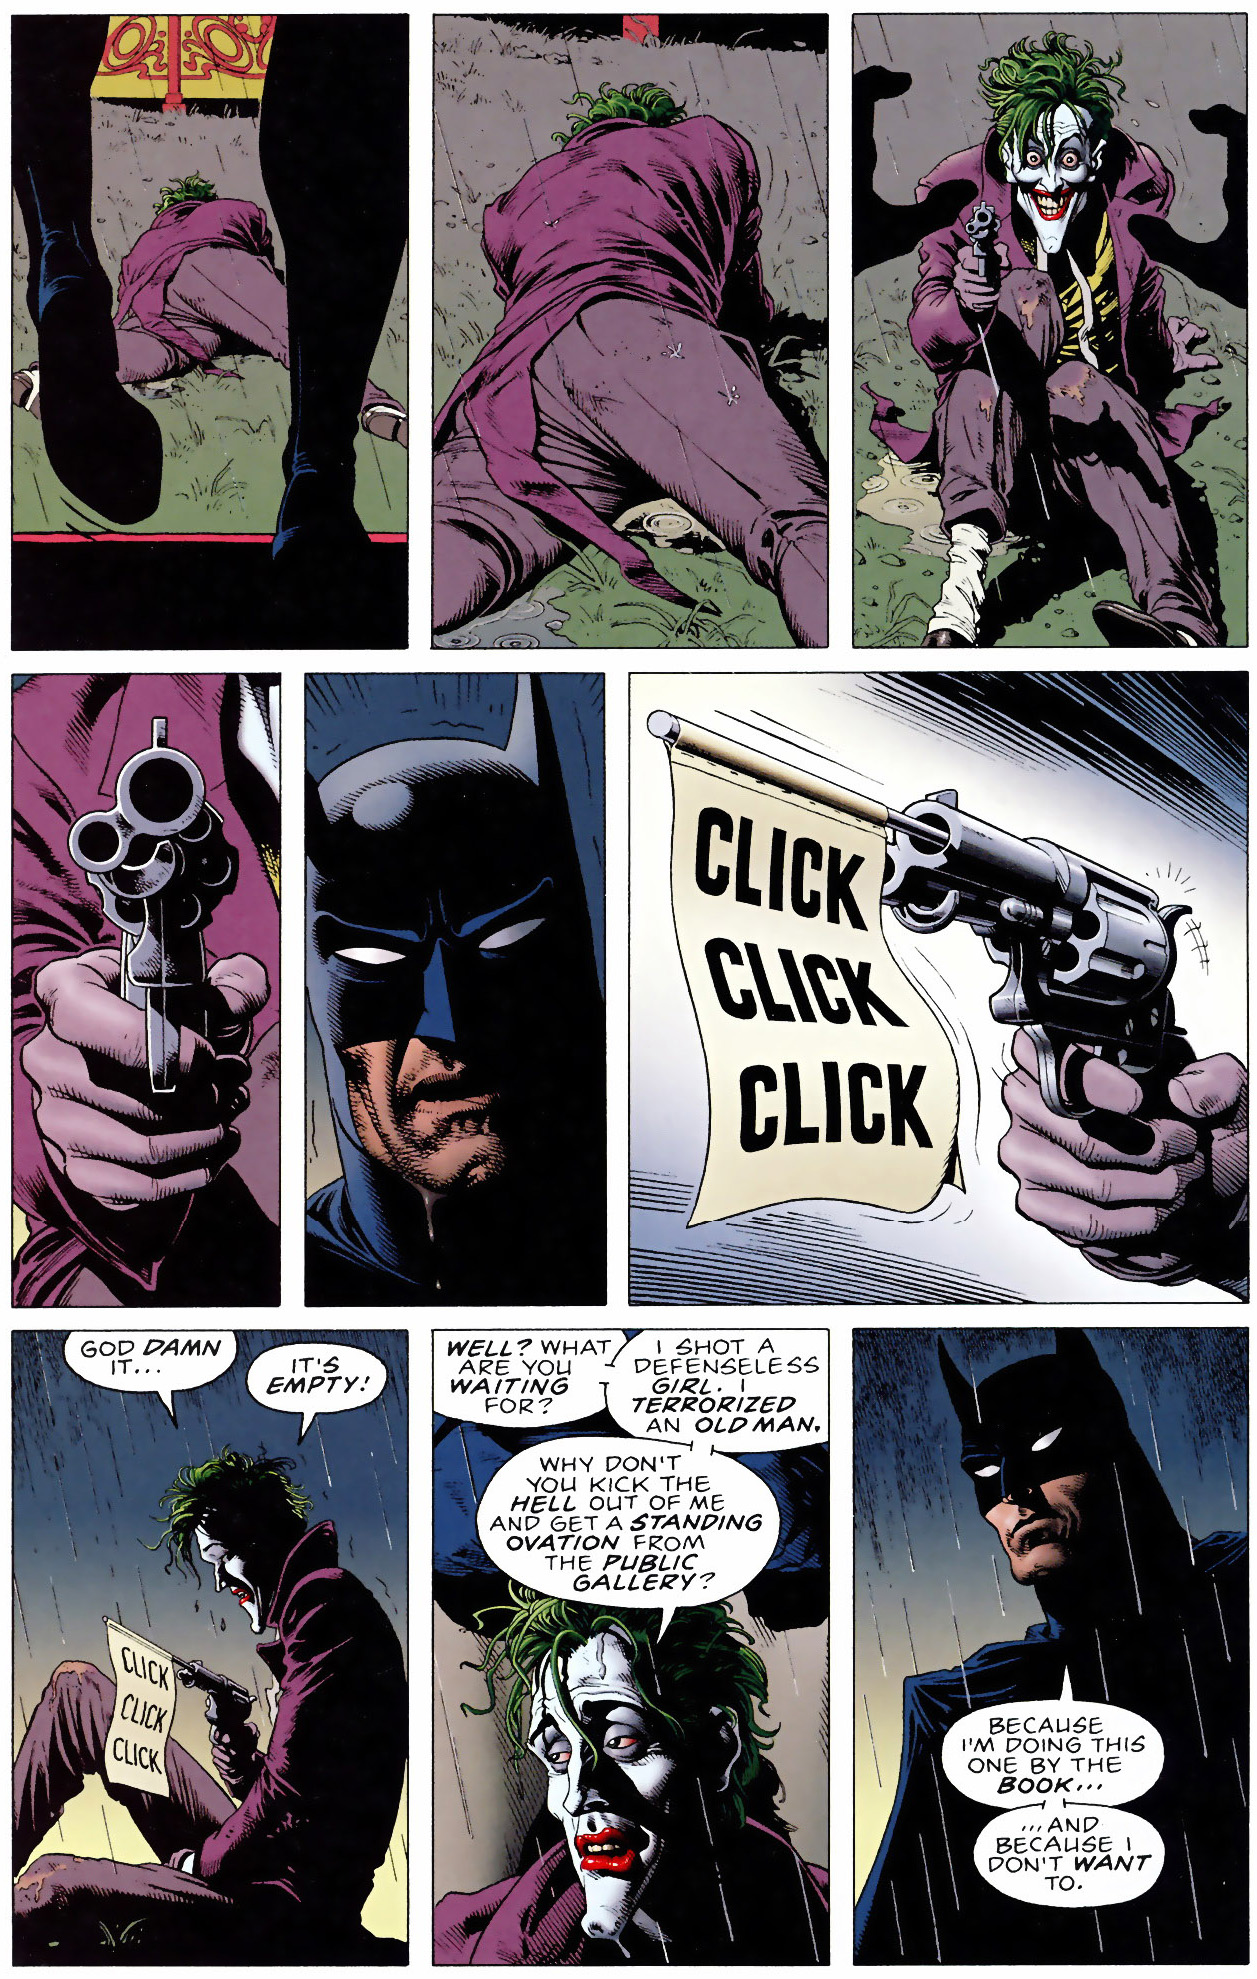 batman-vs-the-joker-killing-joke-6.jpg